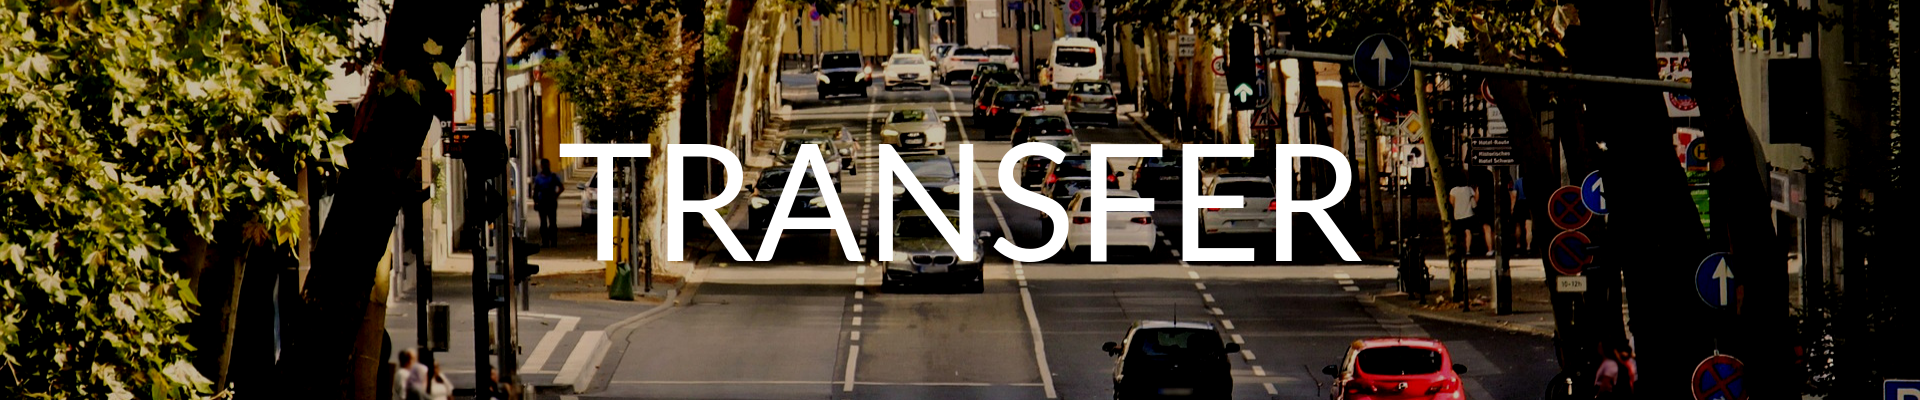 we offer a transfer for a great prices